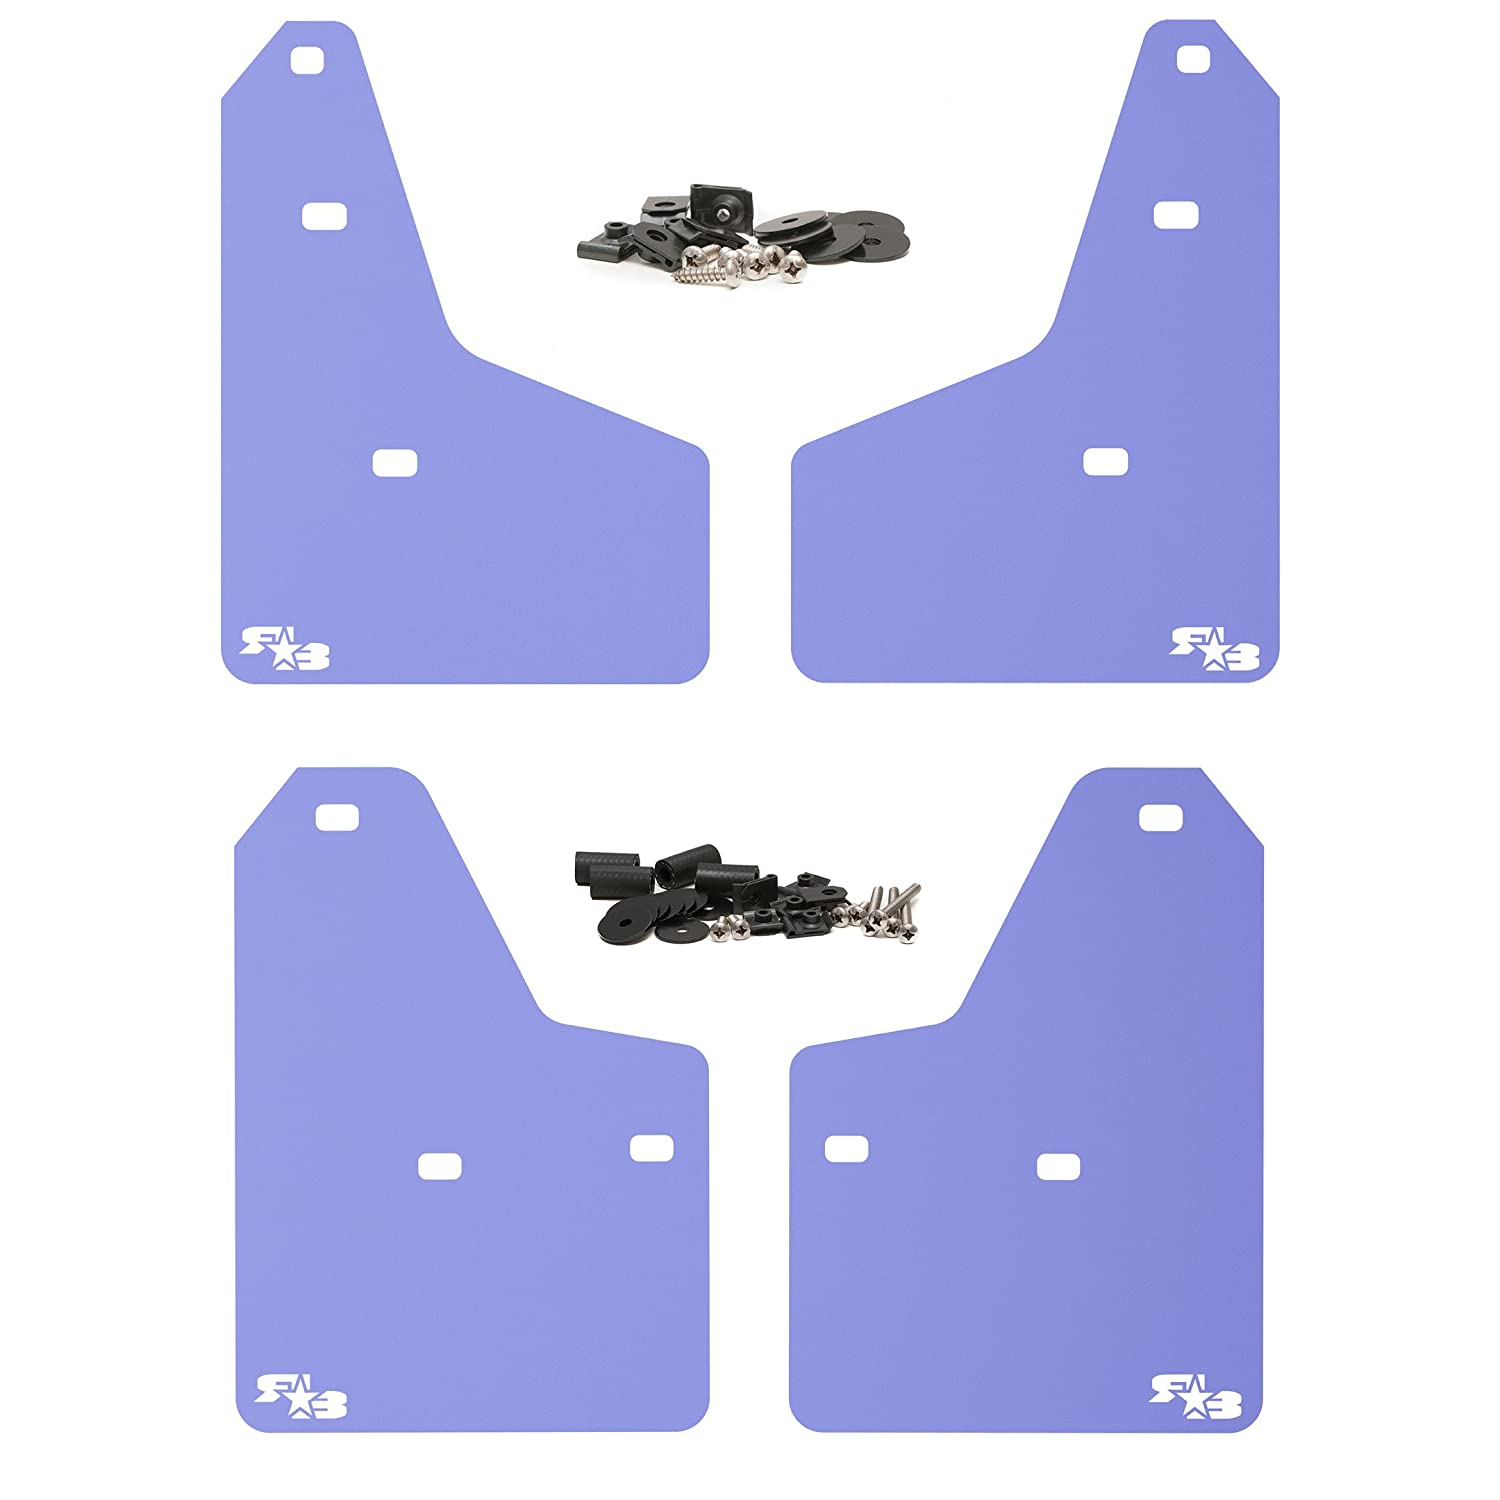 Set of 4 Multiple Colors Available Fits All MK3 Models Black with Red Logo, Originalz Includes All Hardware and Detailed Instructions RokBlokz Mud Flaps for 2012+ Ford Focus